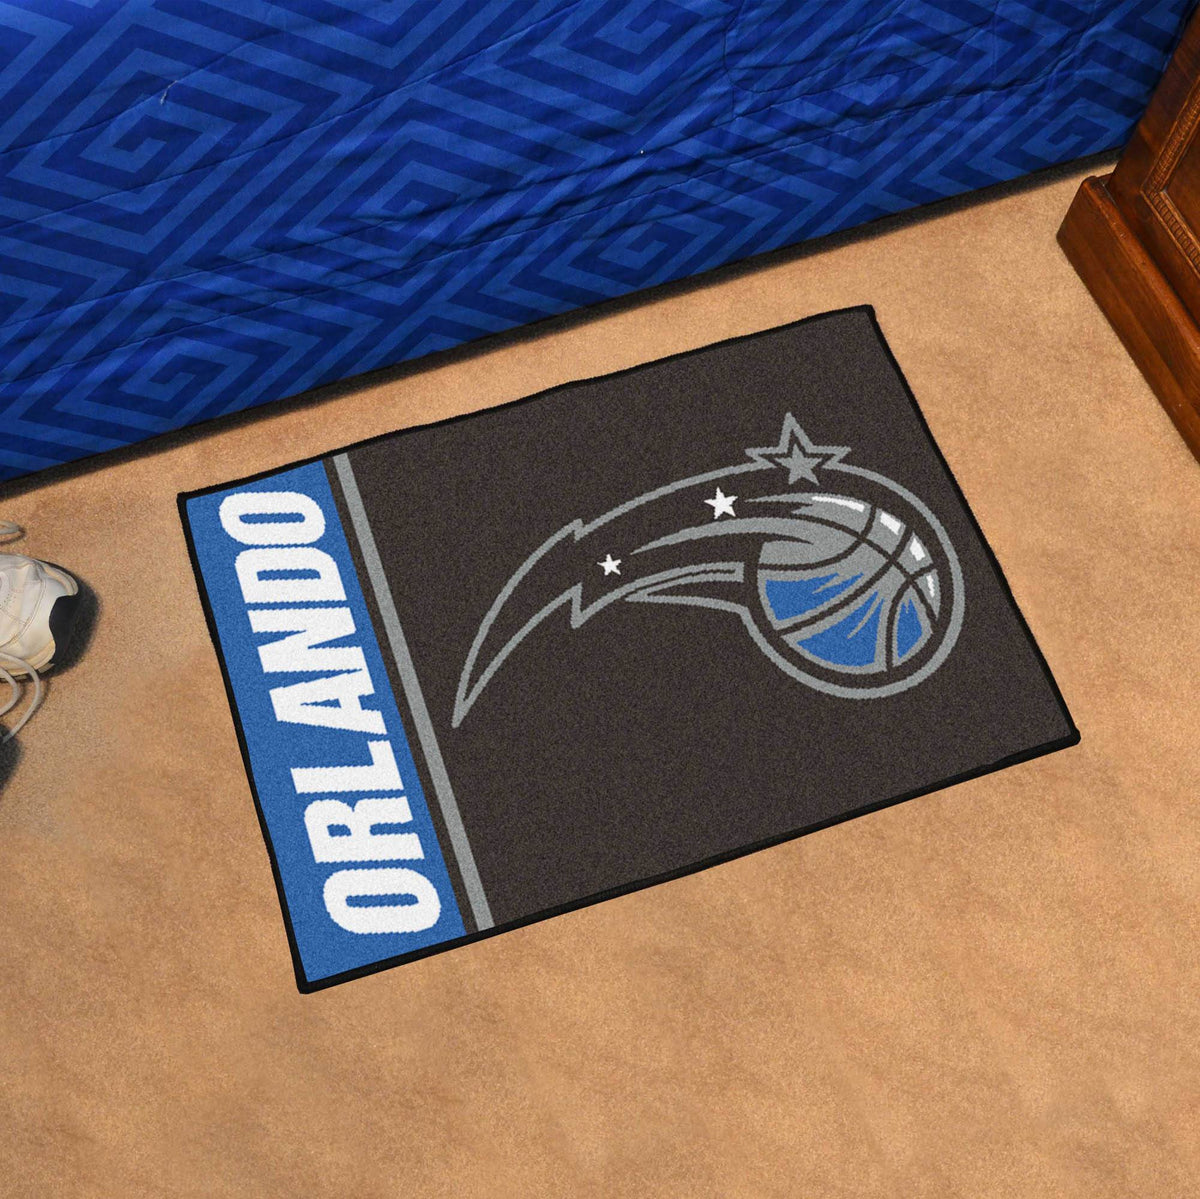 NBA - Uniform Starter Mat NBA Mats, Rectangular Mats, Uniform Starter Mat, NBA, Home Fan Mats Orlando Magic